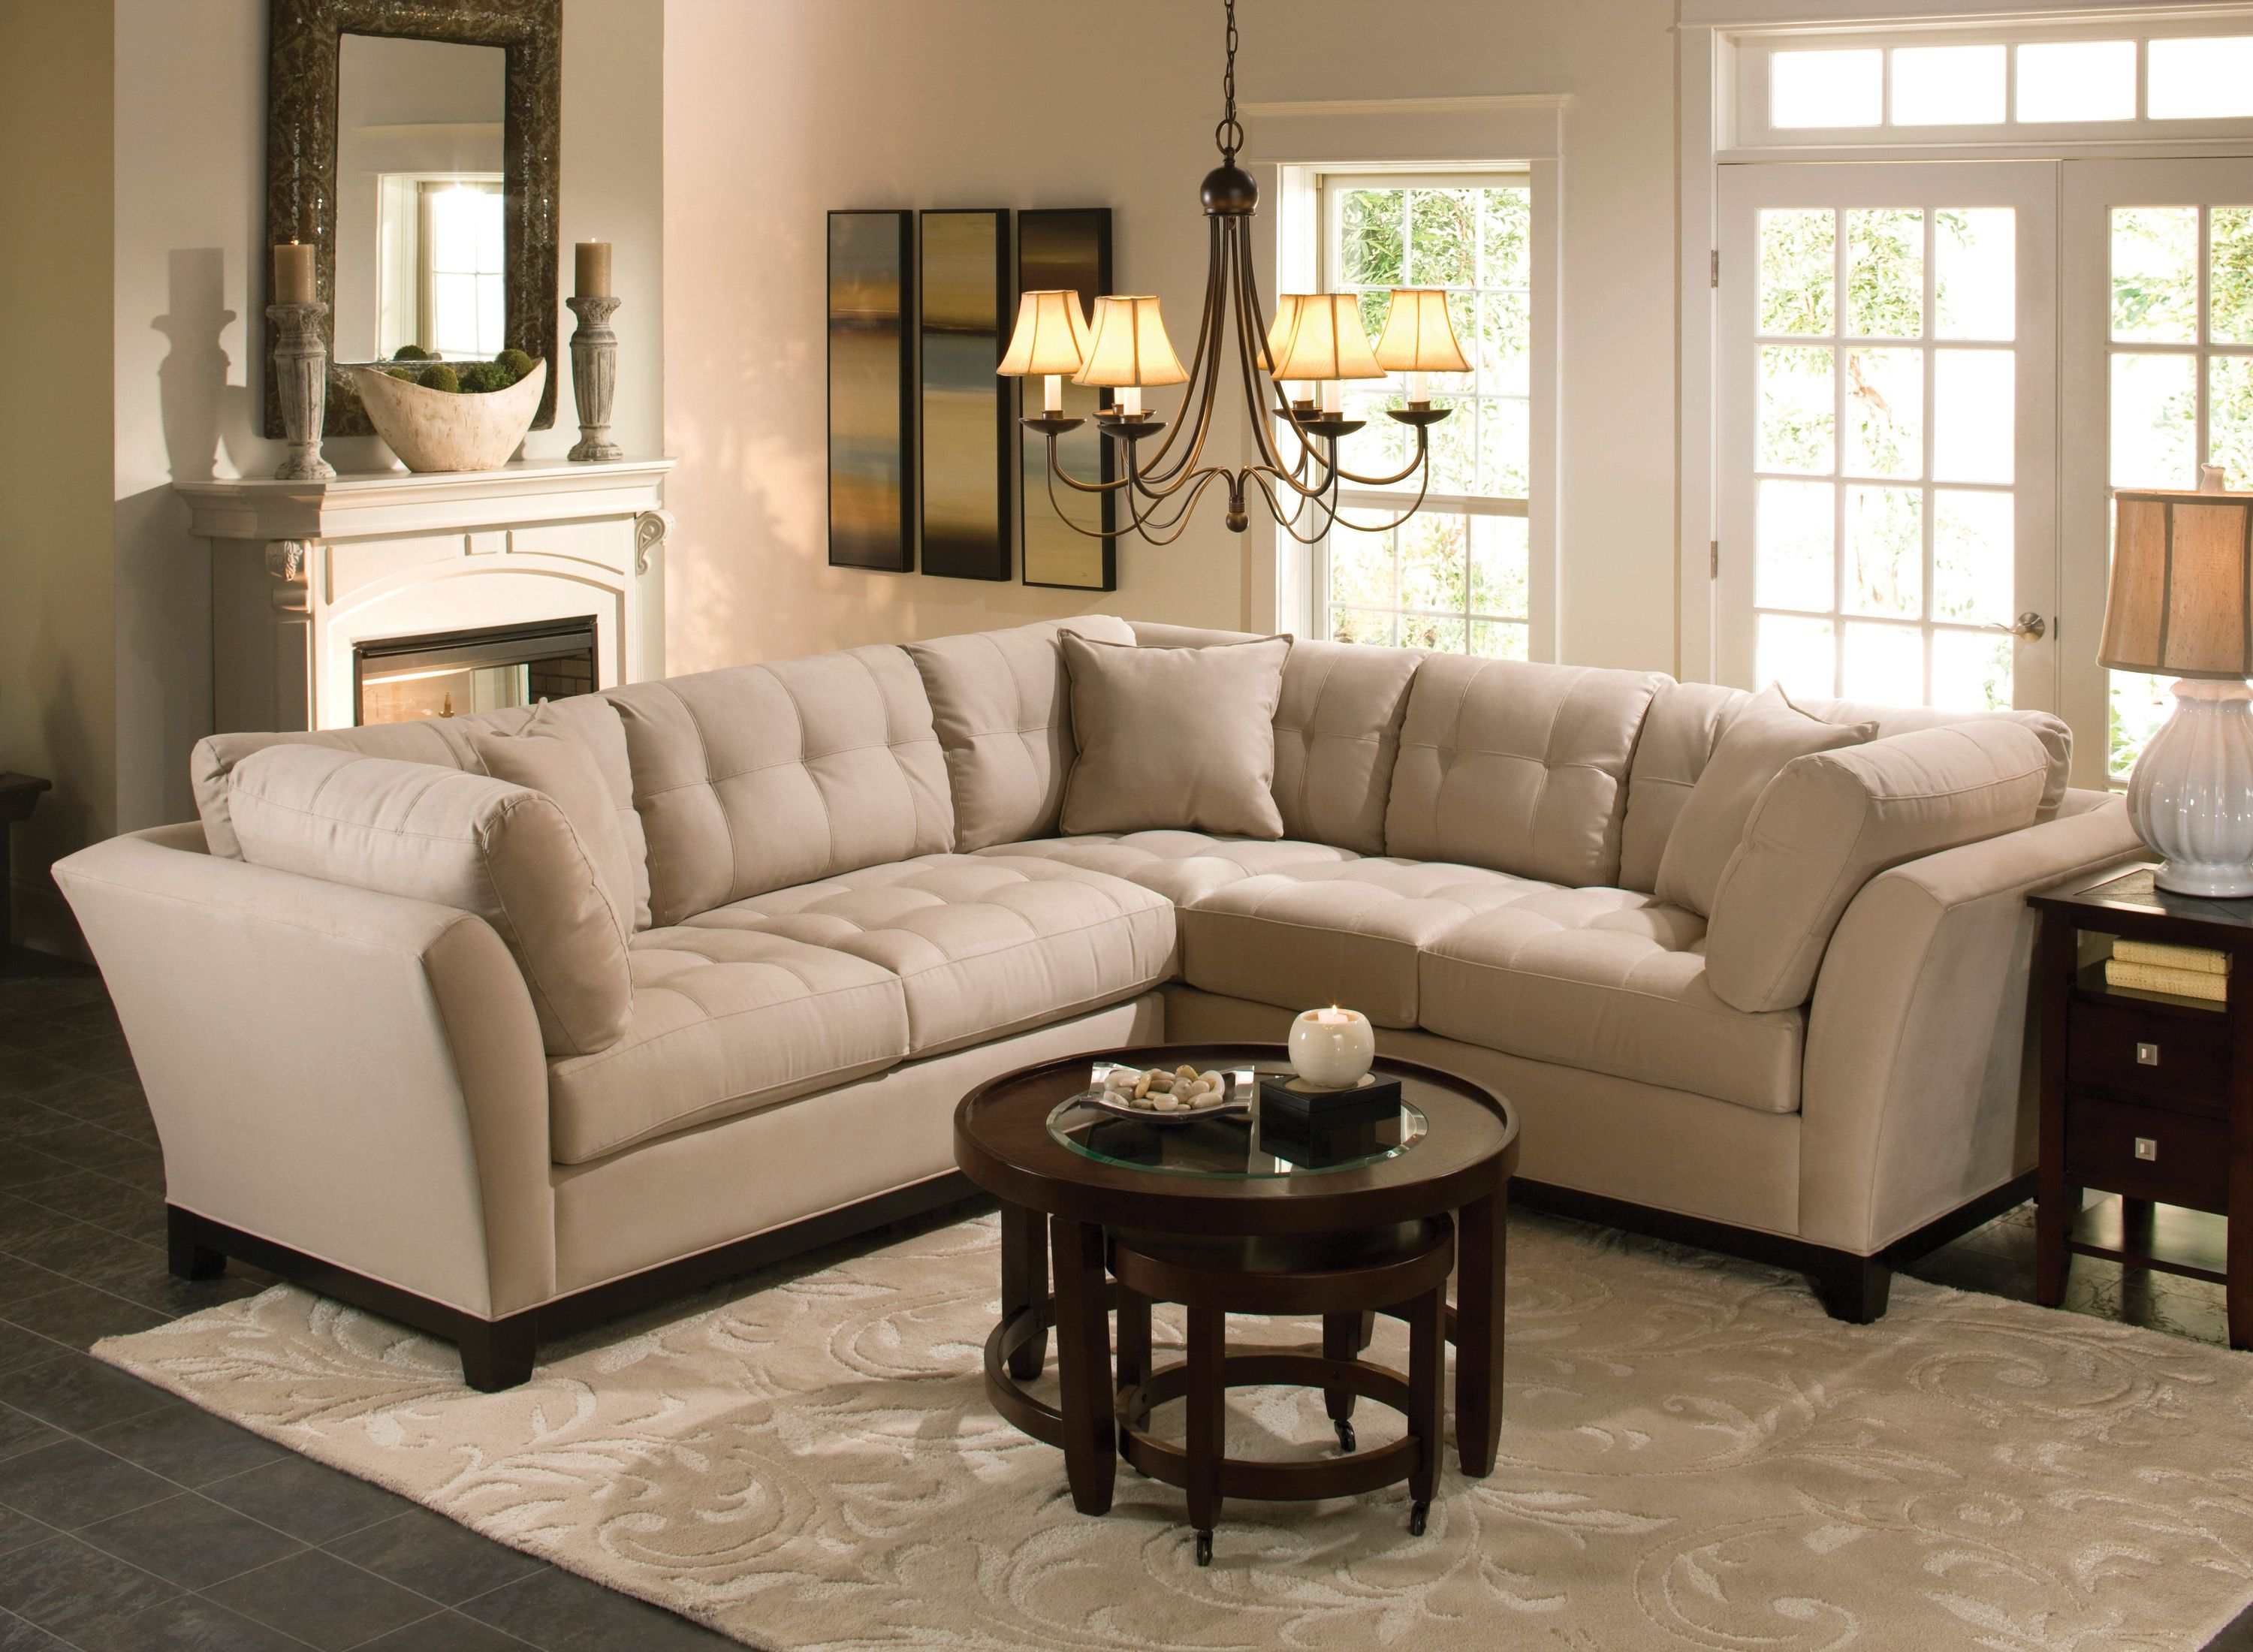 Beauty And Comfort Are The Signatures Of This Cindy Crawford Home  ~ Cindy Crawford Home Sofa